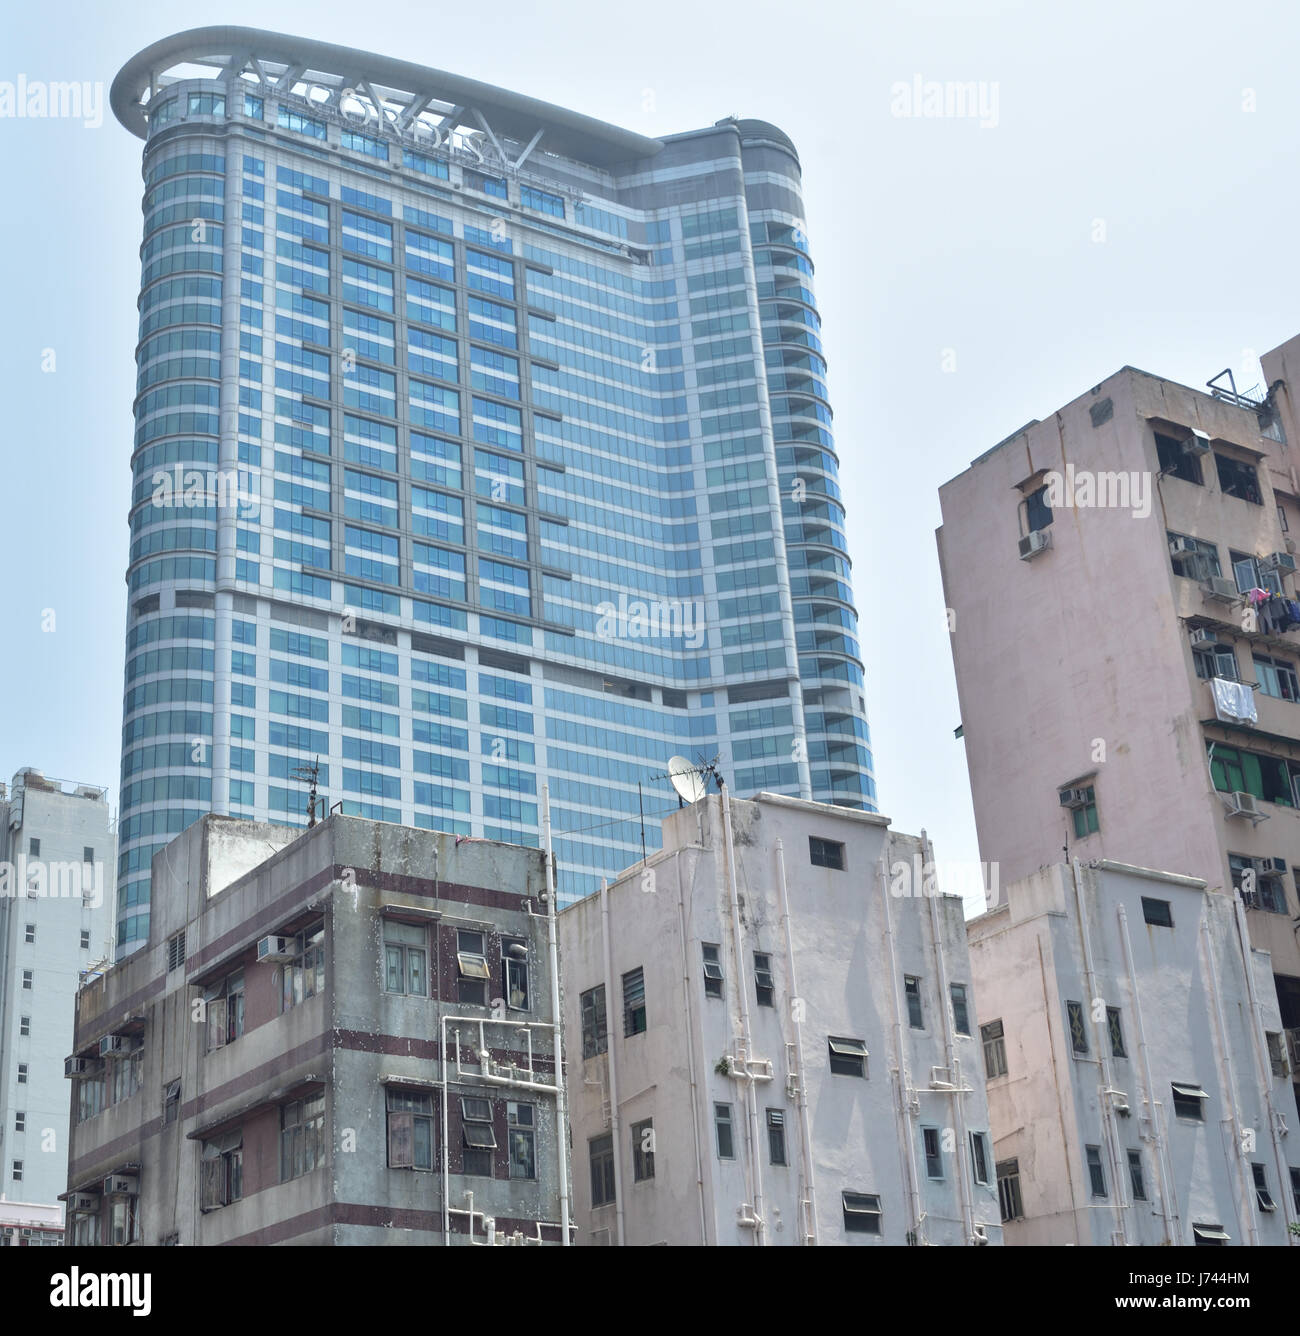 Revamp of decrepit area in Kowloon  where residential block gradually gives way to commercial building. - Stock Image